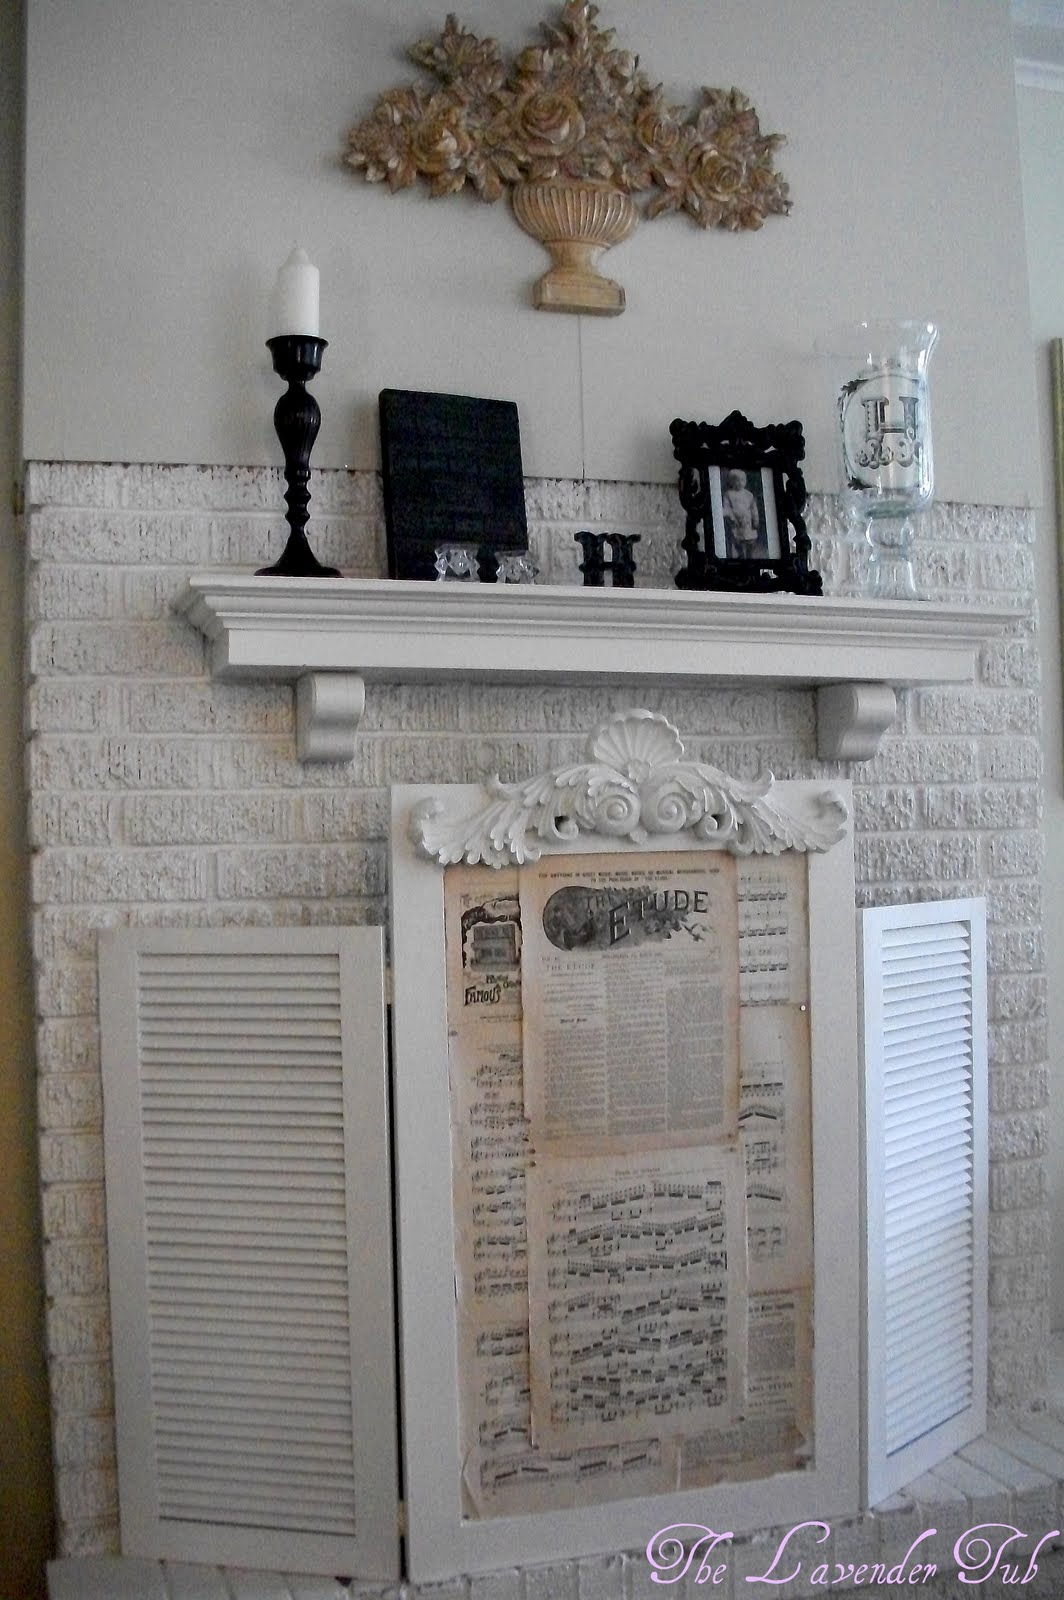 The Lavender Tub Classy Fireplace Screen